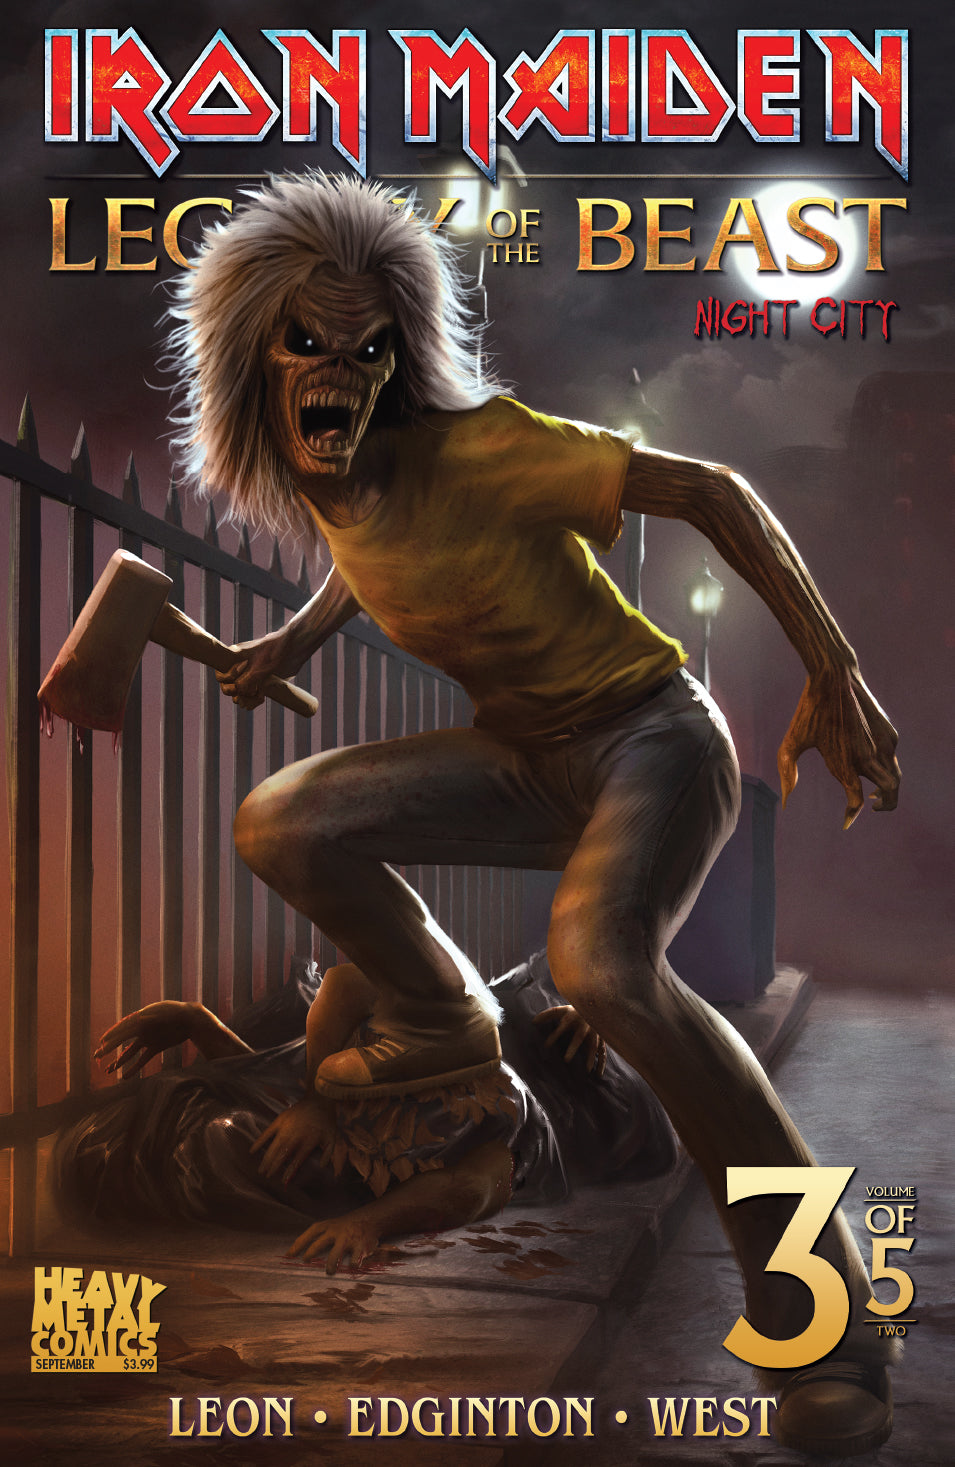 Iron Maiden Legacy of the Beast Vol2 - Night City - Issue #3 - Cover C - Carlos Dattoli